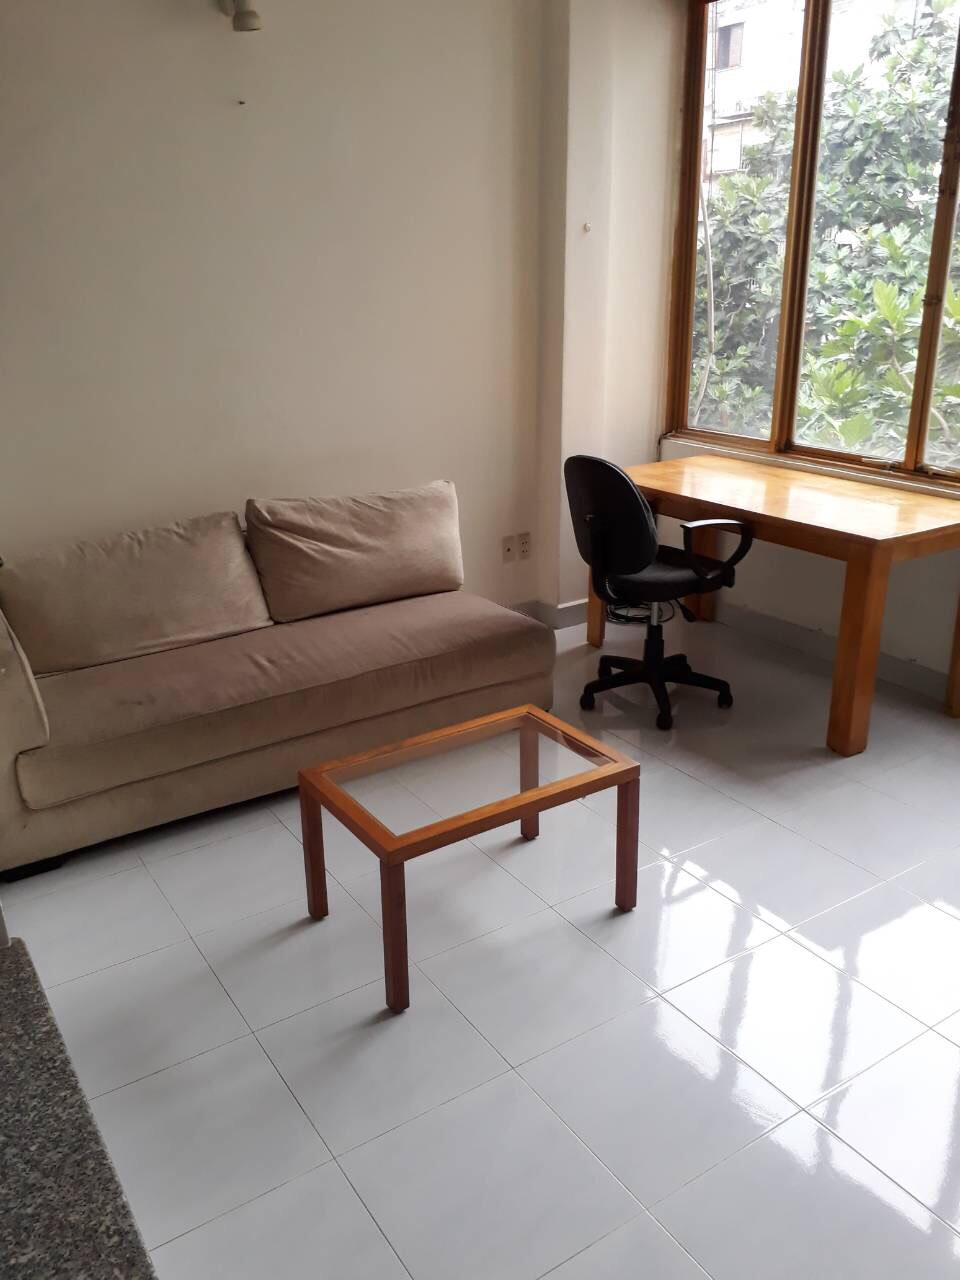 Servived Apartment For Rent in D1, 1 bedroom, $600